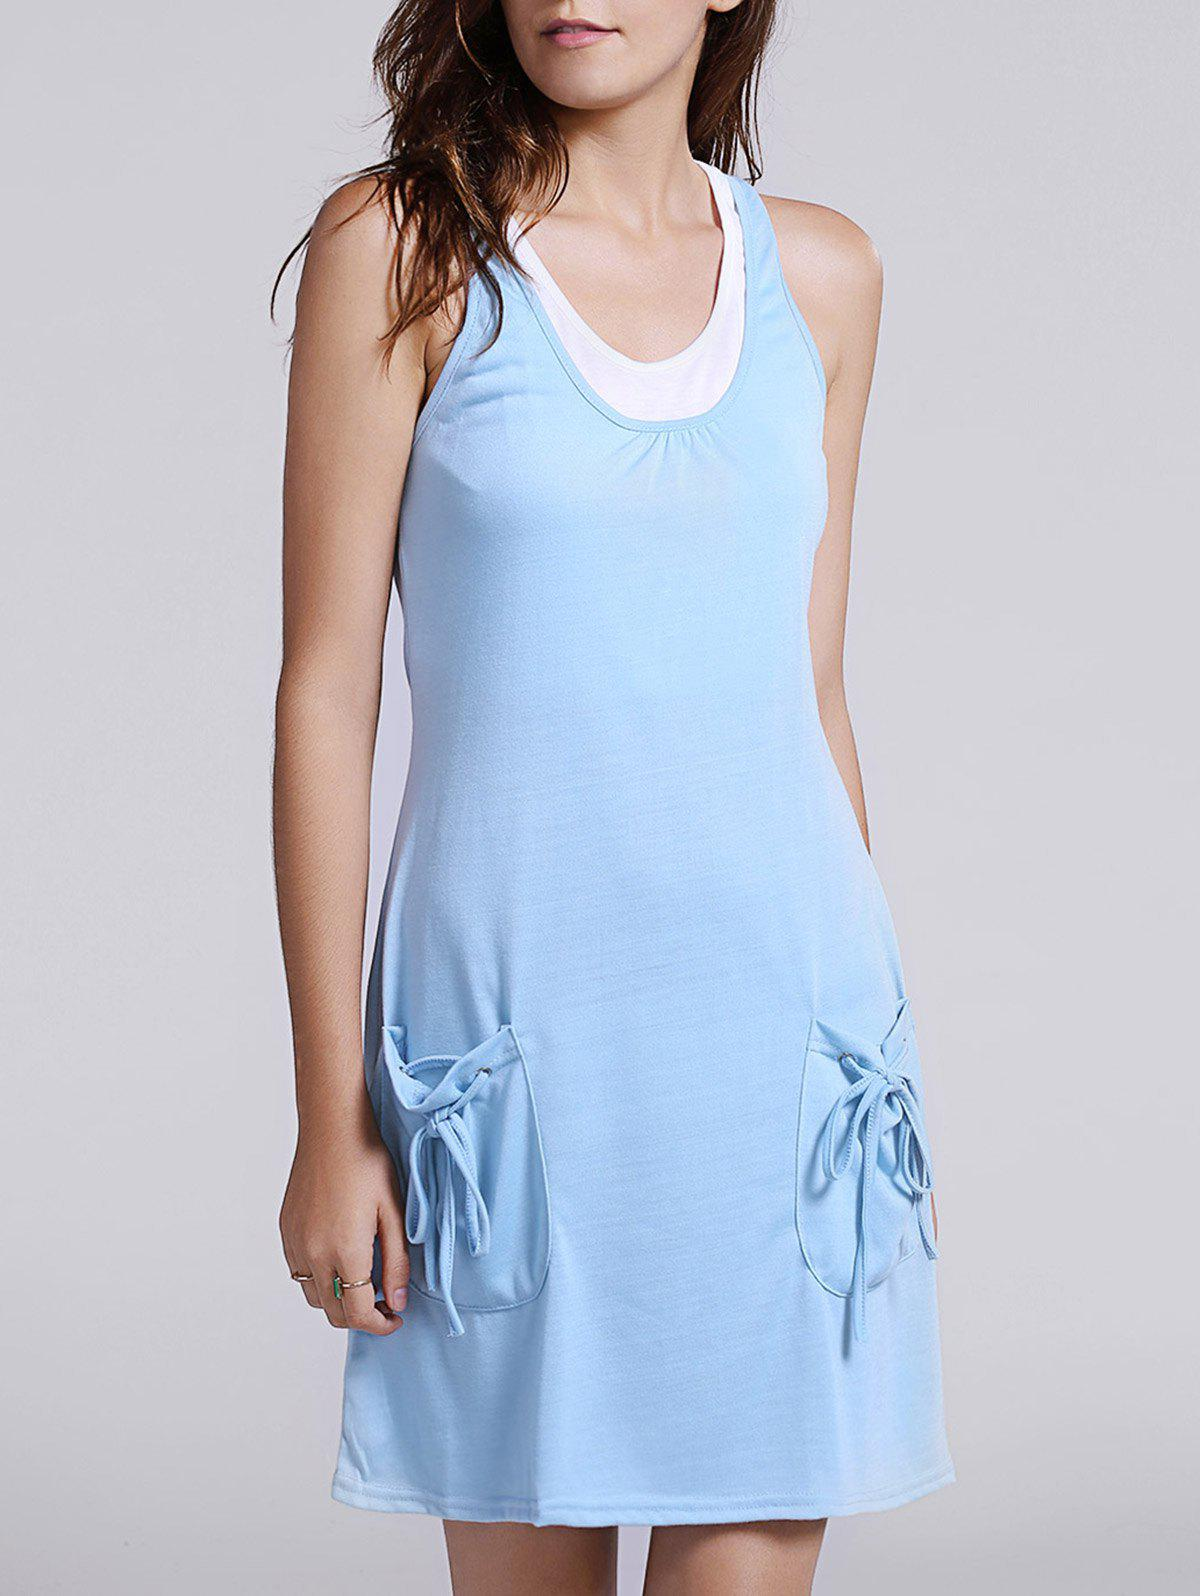 Casual Tank Top + Pocket Design U Neck Dress Women's Twinset - BLUE XL